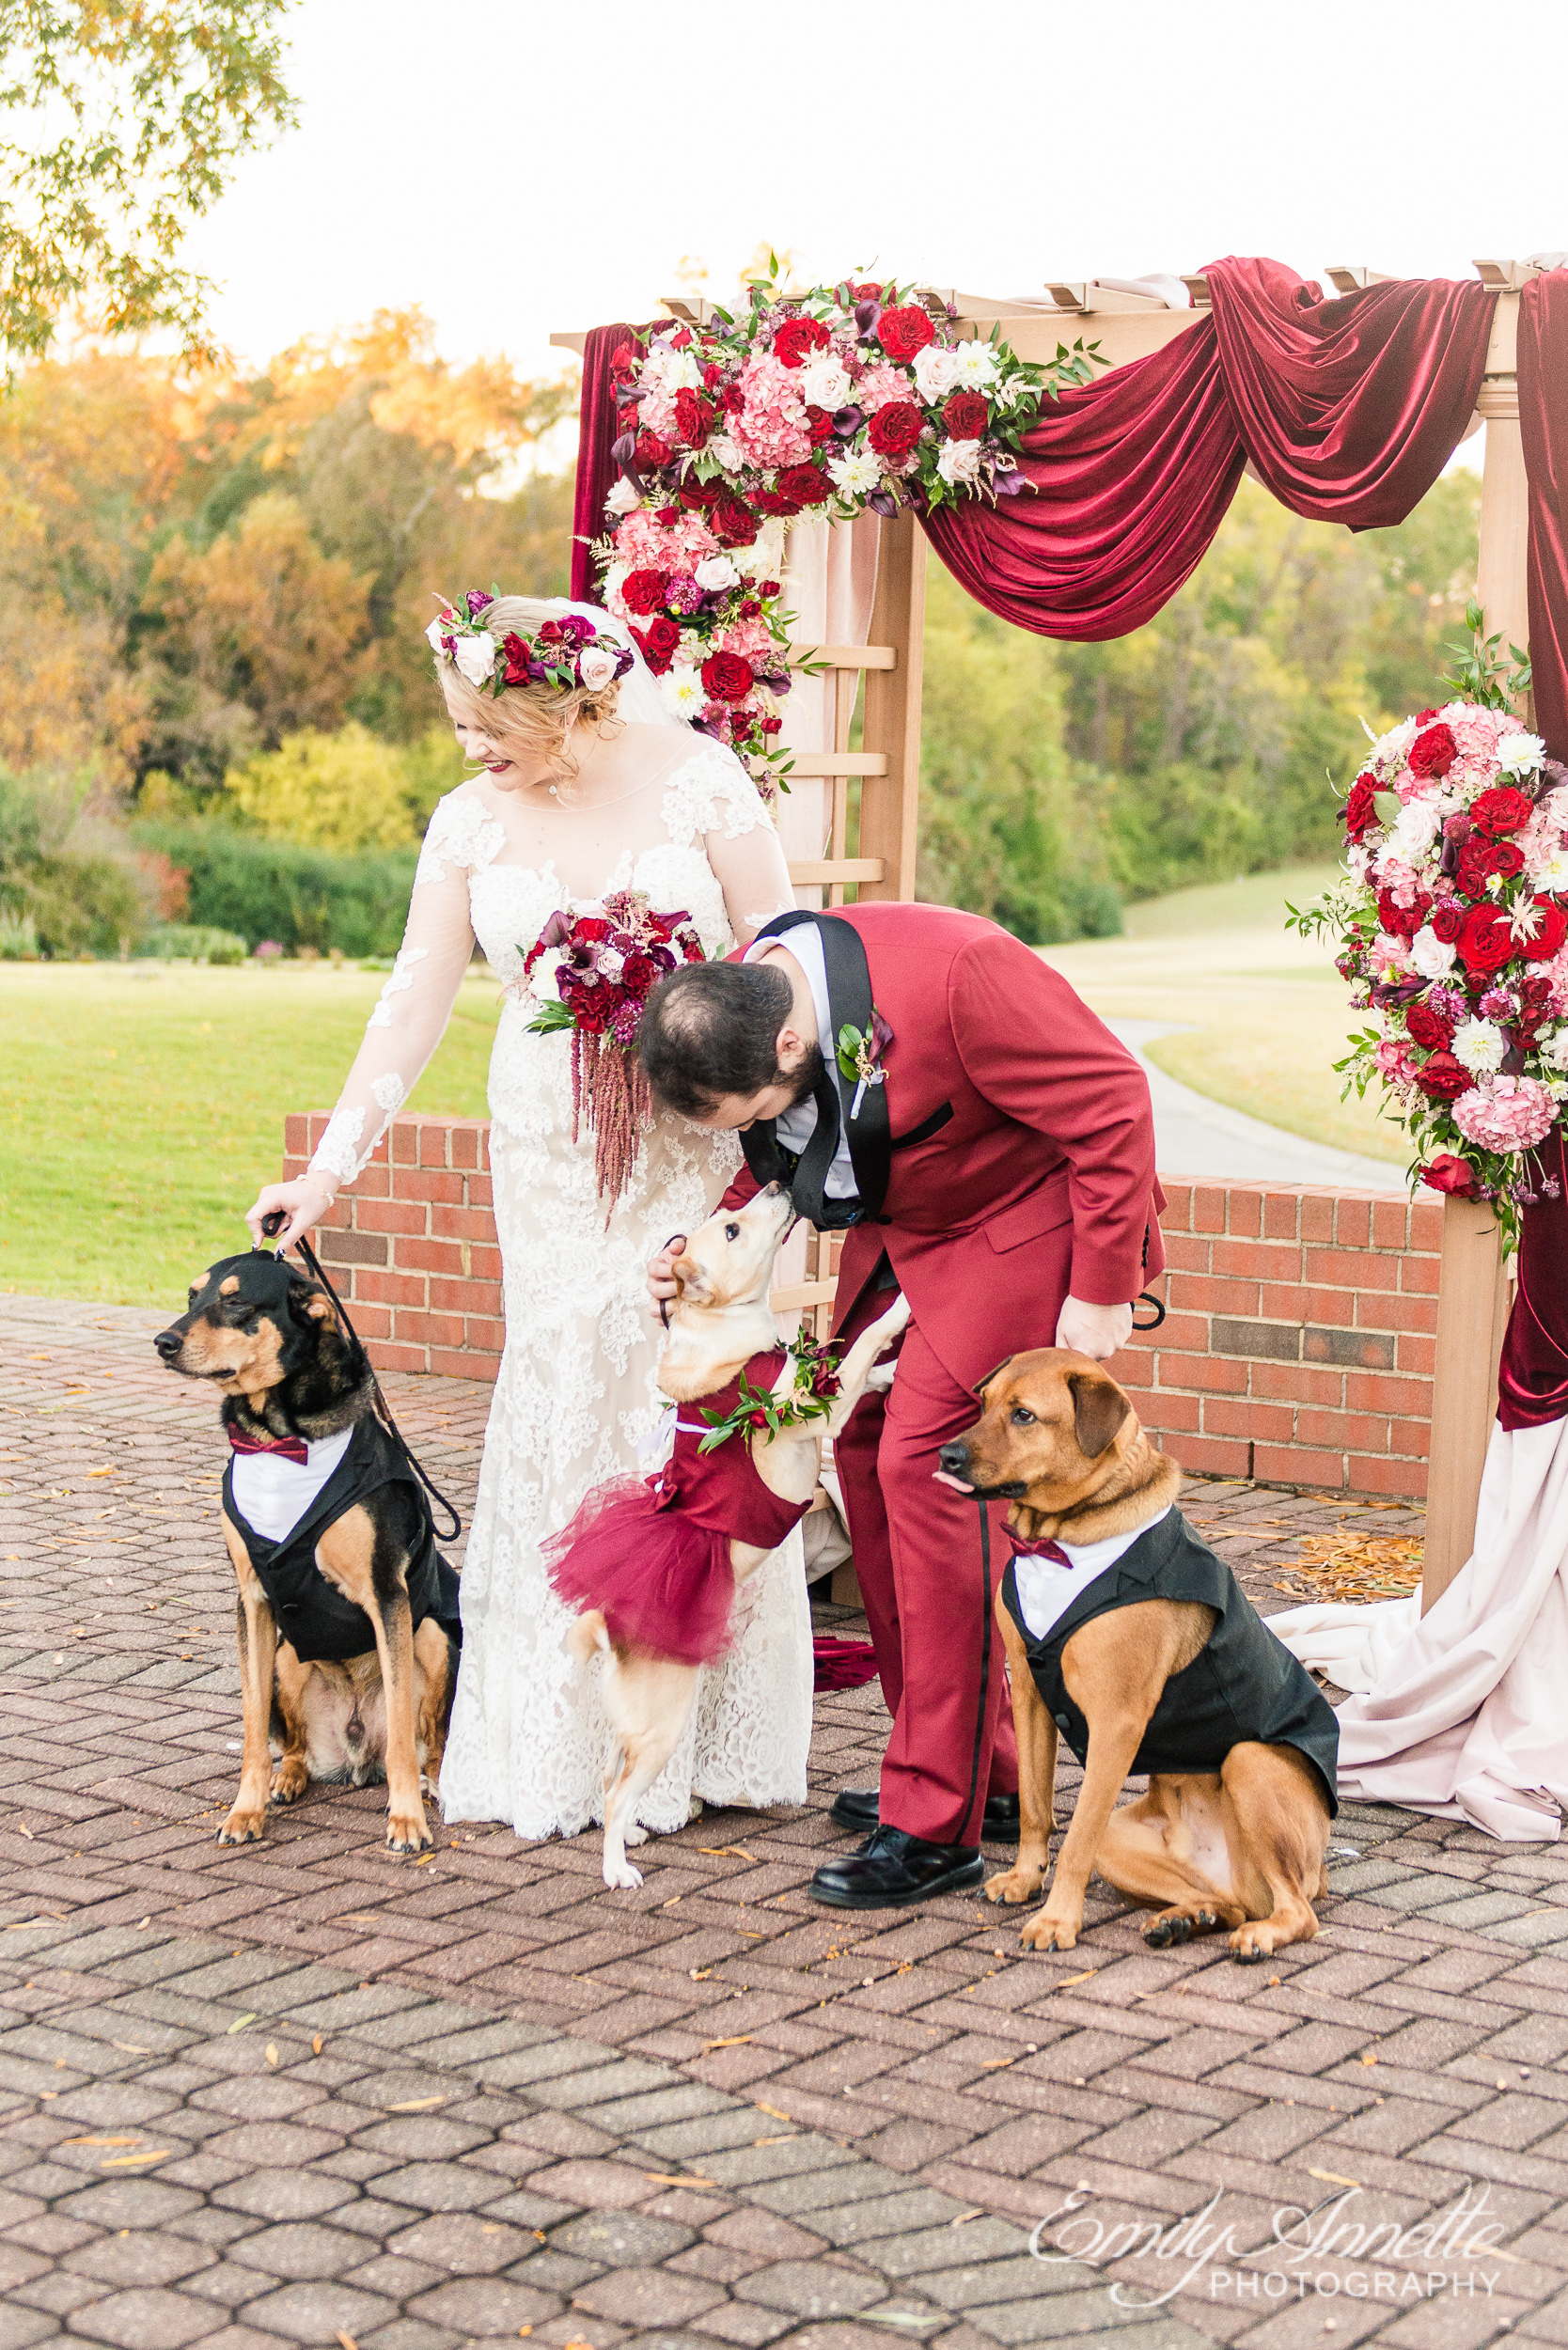 A bride and groom getting ready to take photos with their dogs in dresses and suits as part of the wedding party after an outdoor wedding ceremony at Willow Oaks Country Club in Richmond, Virginia